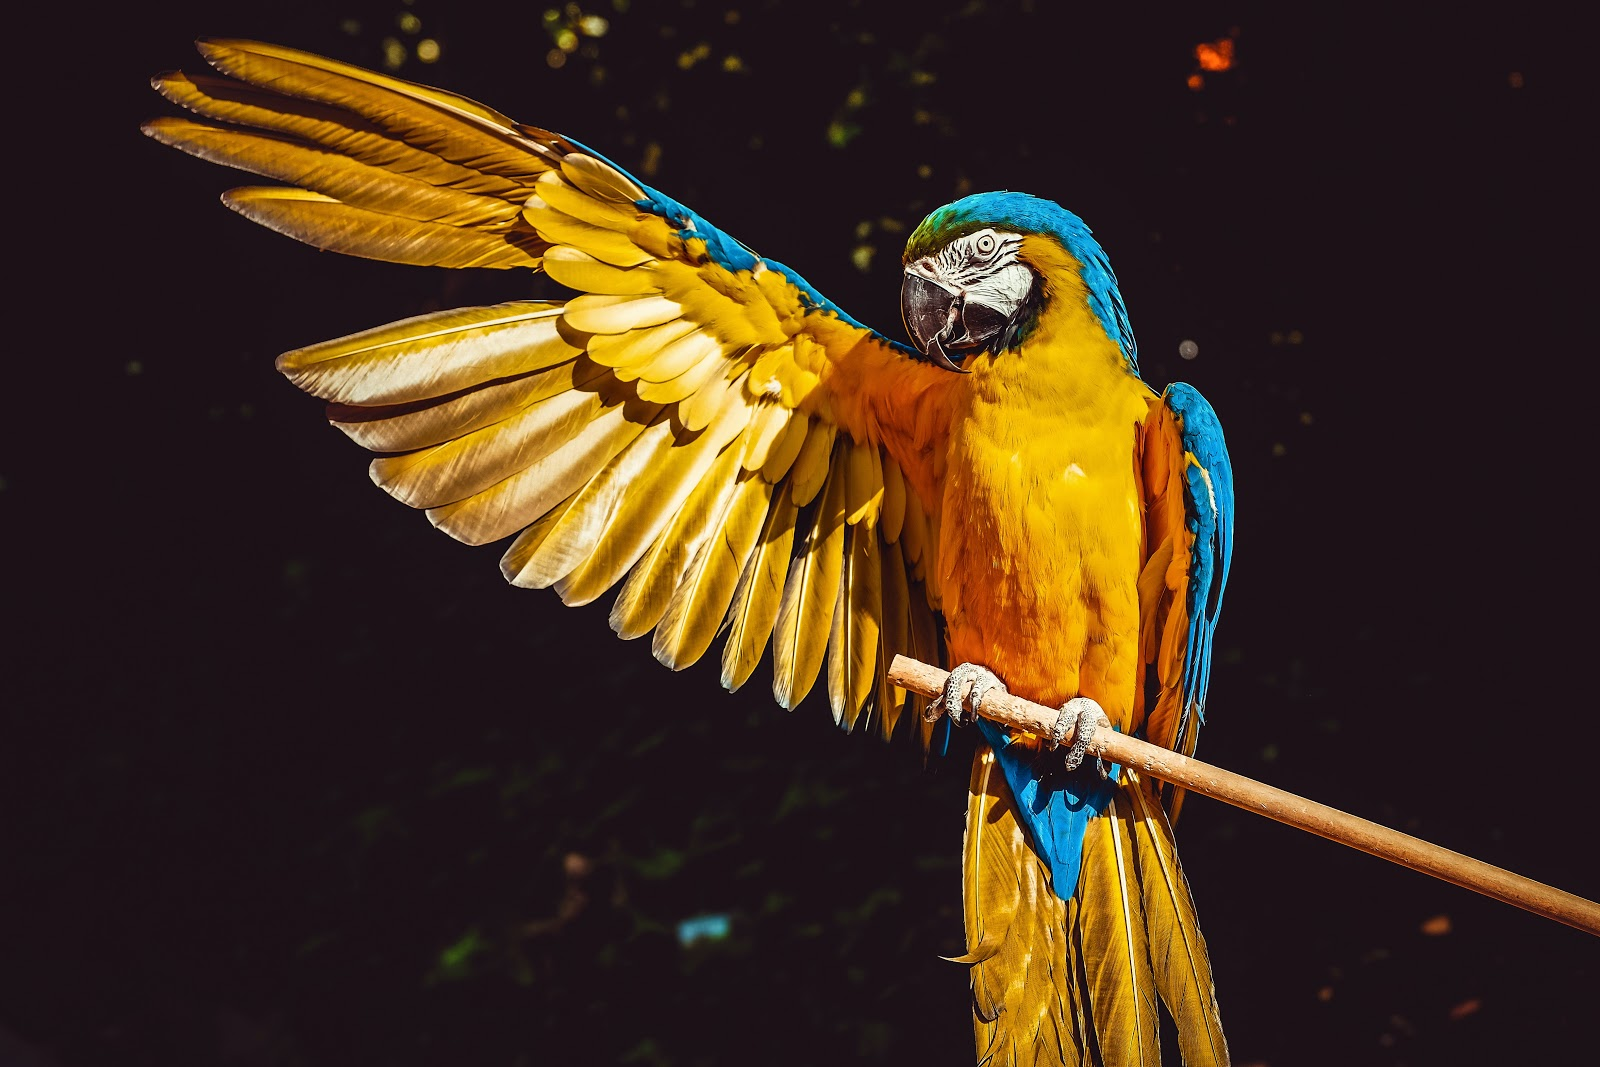 photo-of-yellow-and-blue-macaw-with-one-wing-open-perched-on-birds-pictures